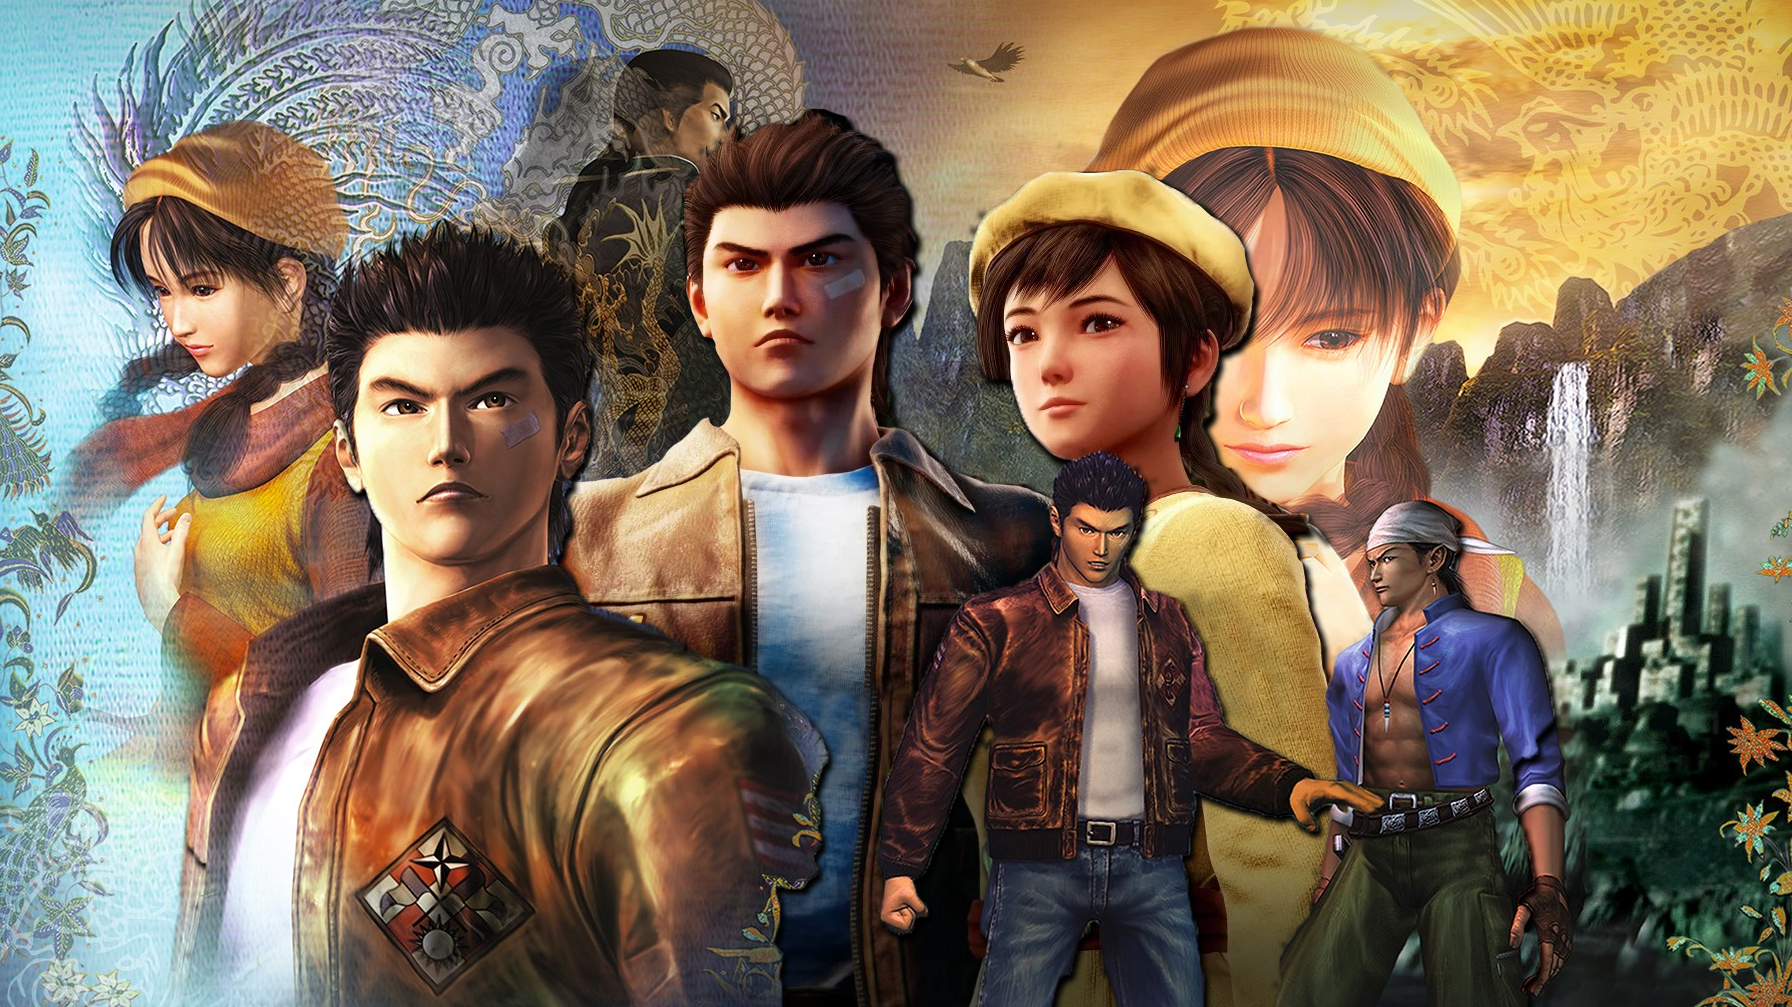 How we finally got Shenmue 3 after 18 long years